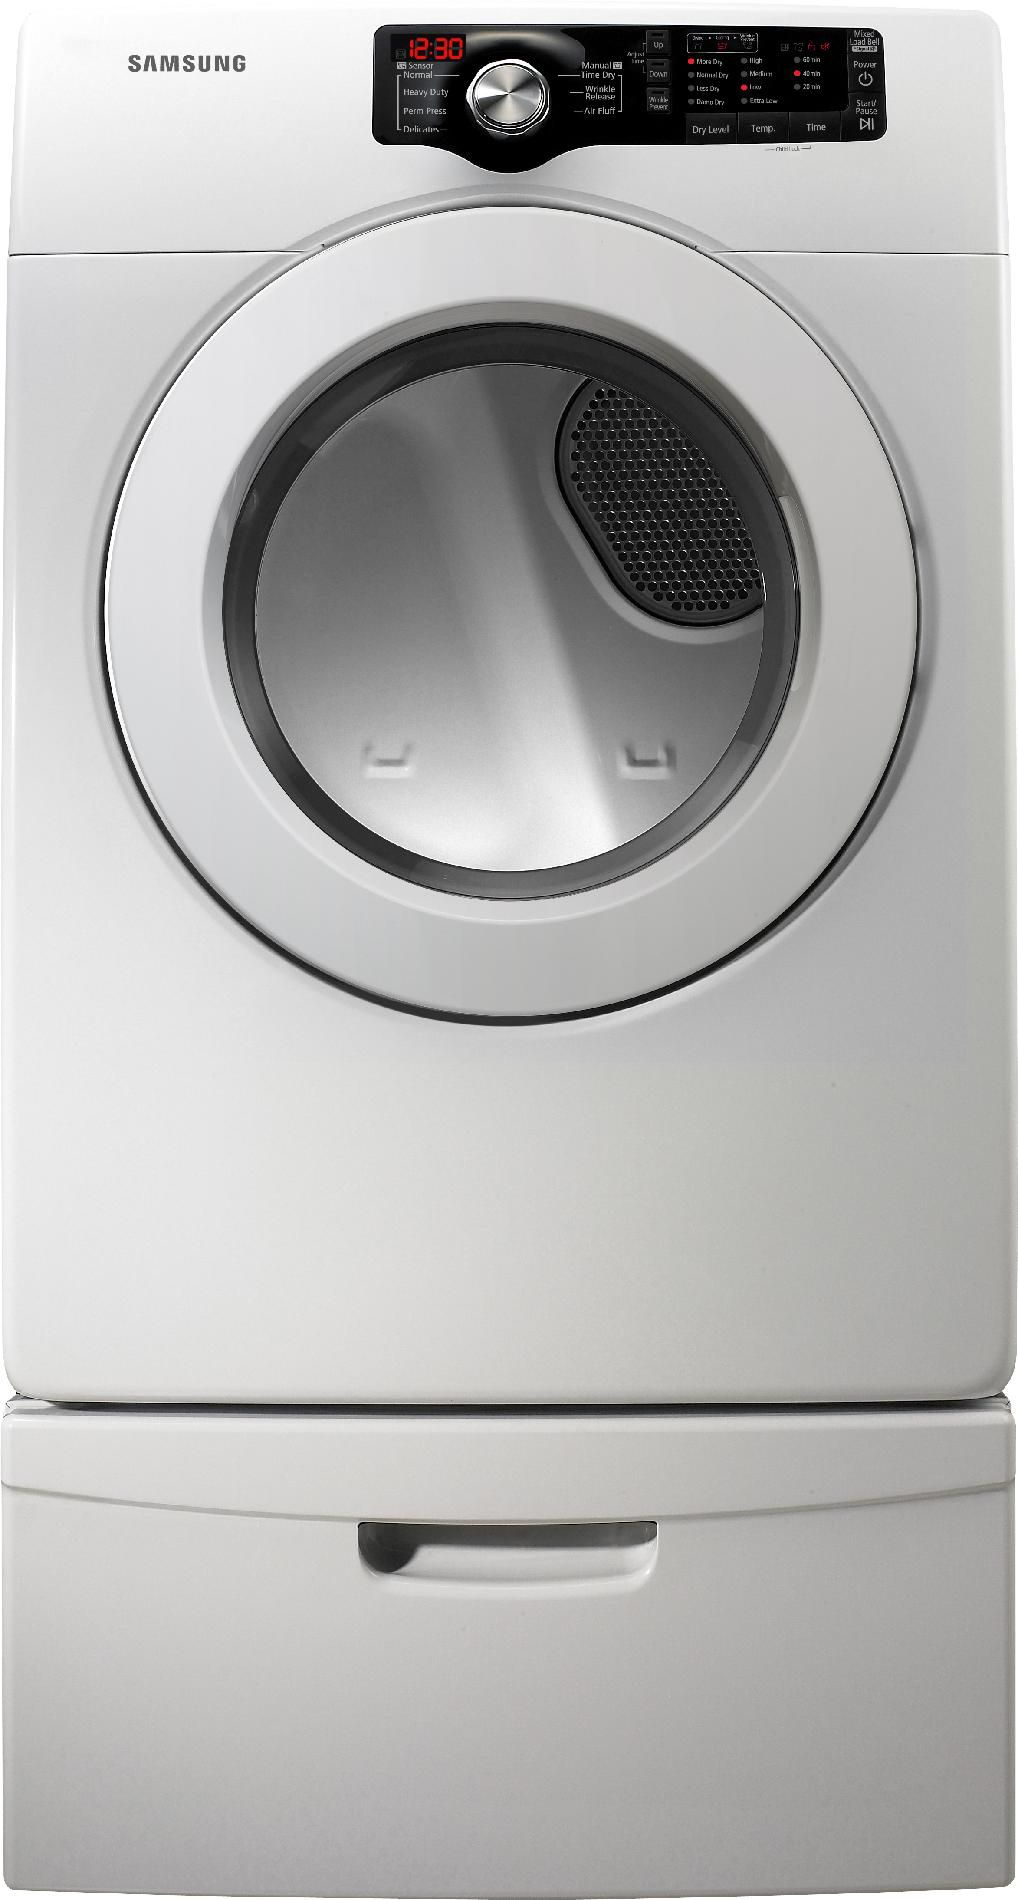 Samsung 7.3 cu. ft. Electric Dryer - White